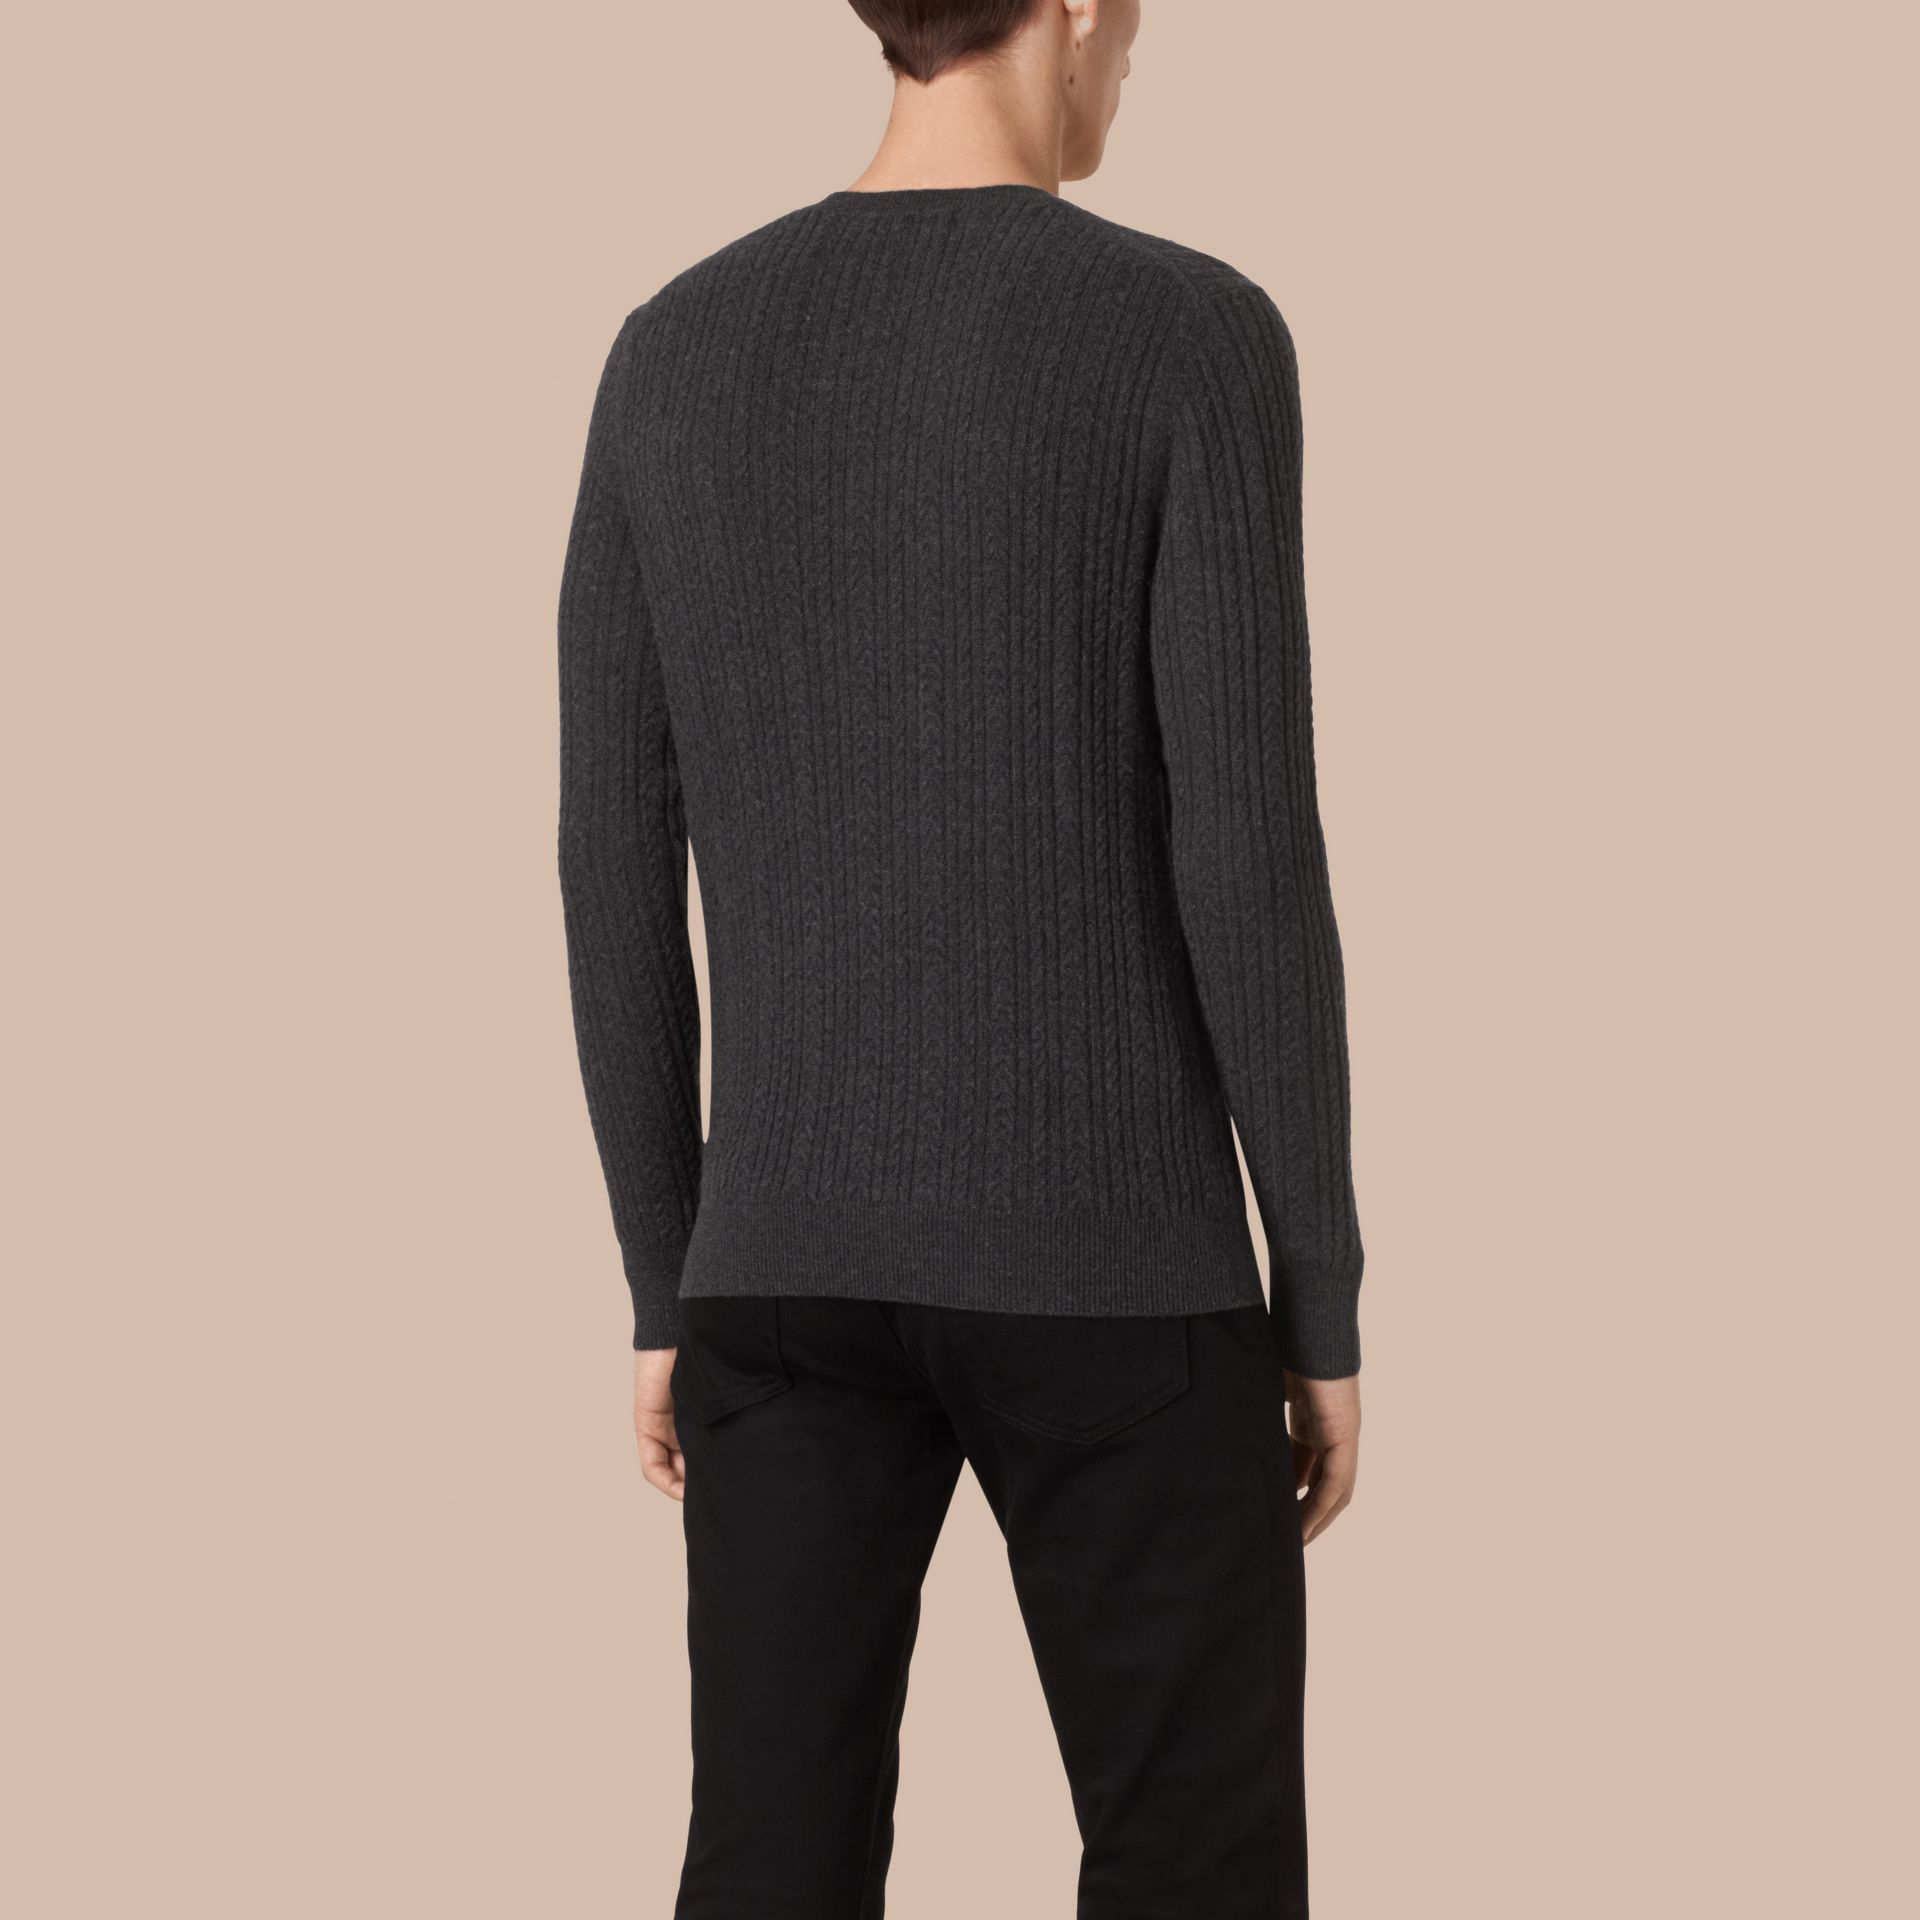 Charcoal Aran Knit Cashmere Sweater Charcoal - gallery image 3